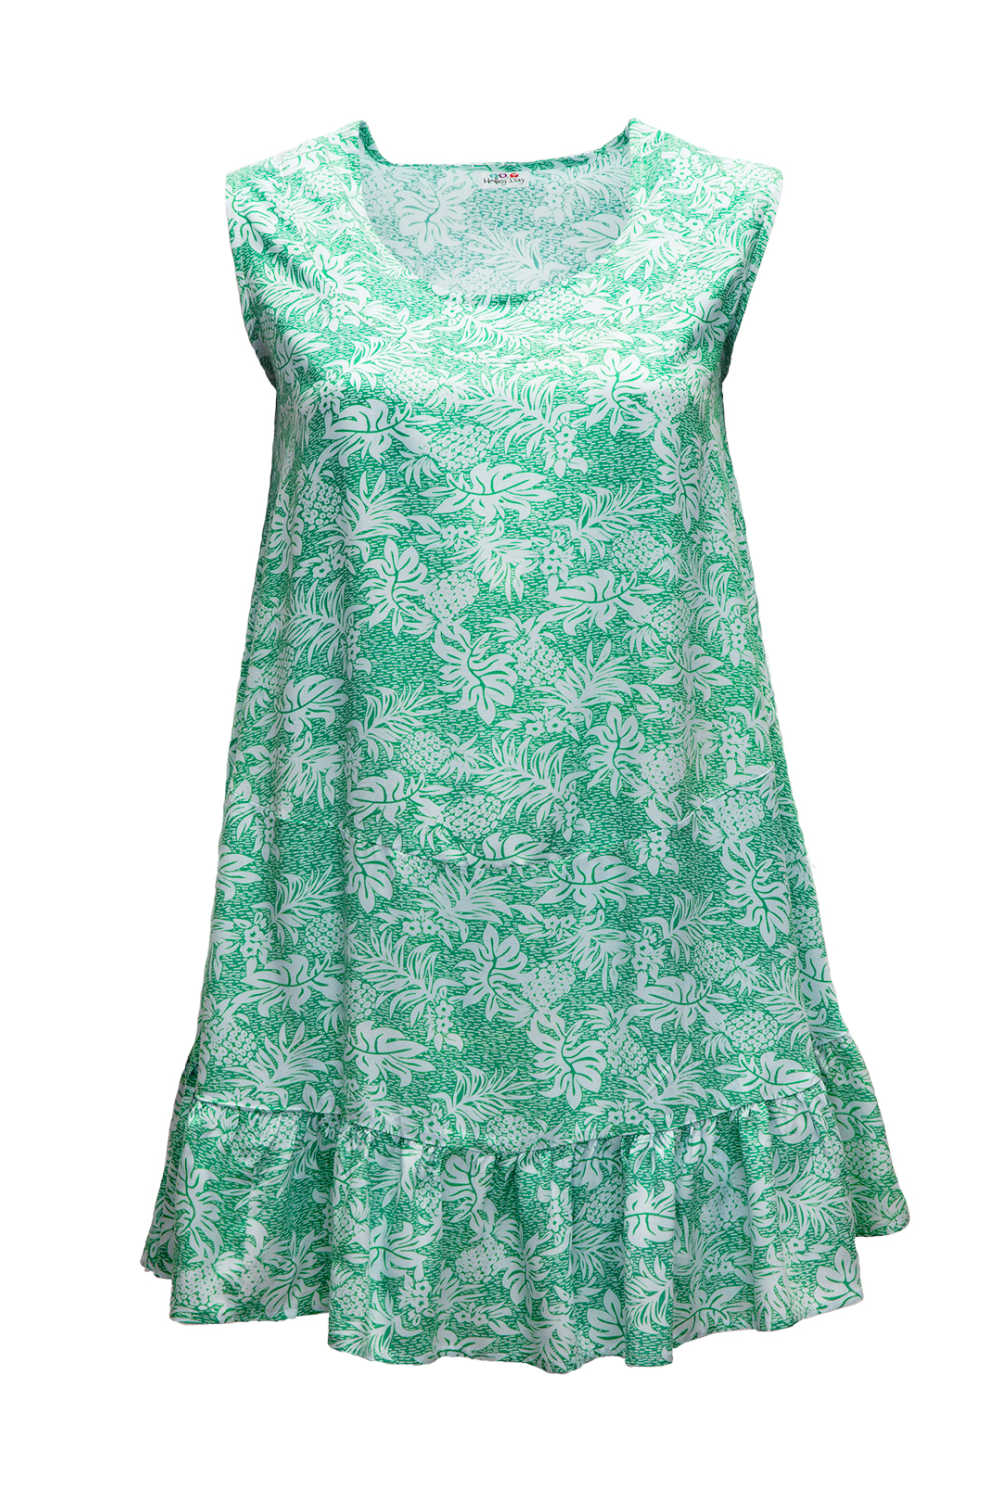 summer-dress-white-green-pineapple-print-design